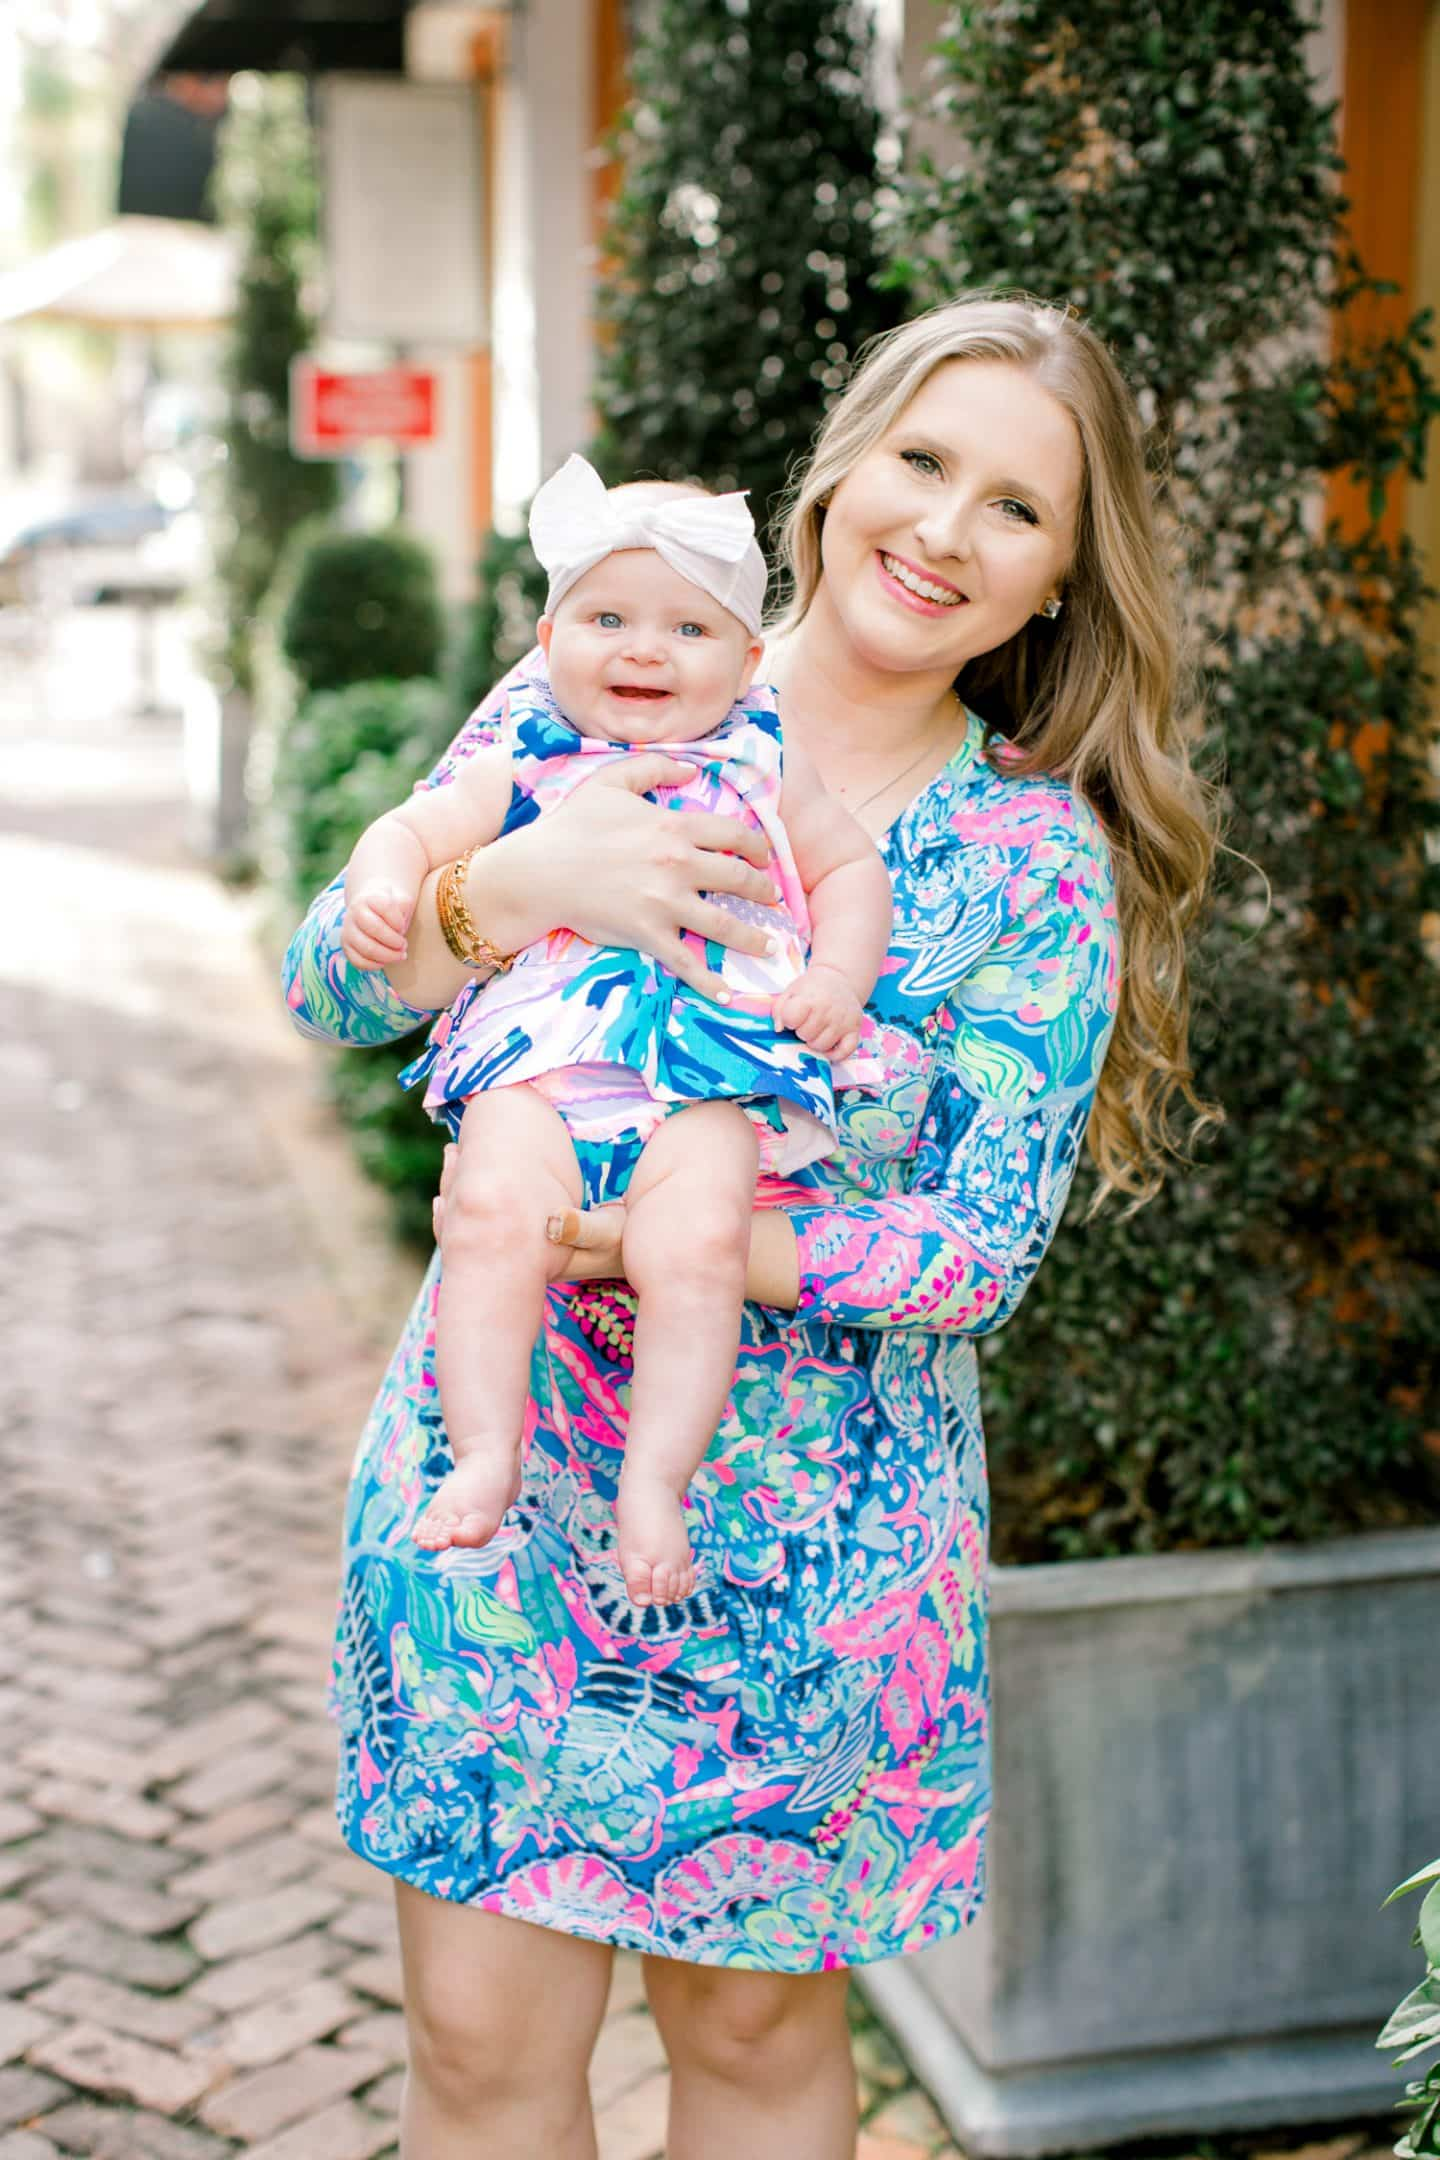 4bf0f7a9ca7 Is there anything cuter than chubby cheeks and chunky legs in a Lilly  Pulitzer baby shift dress  I don t think so! Summer giggled and kicked her  legs in ...